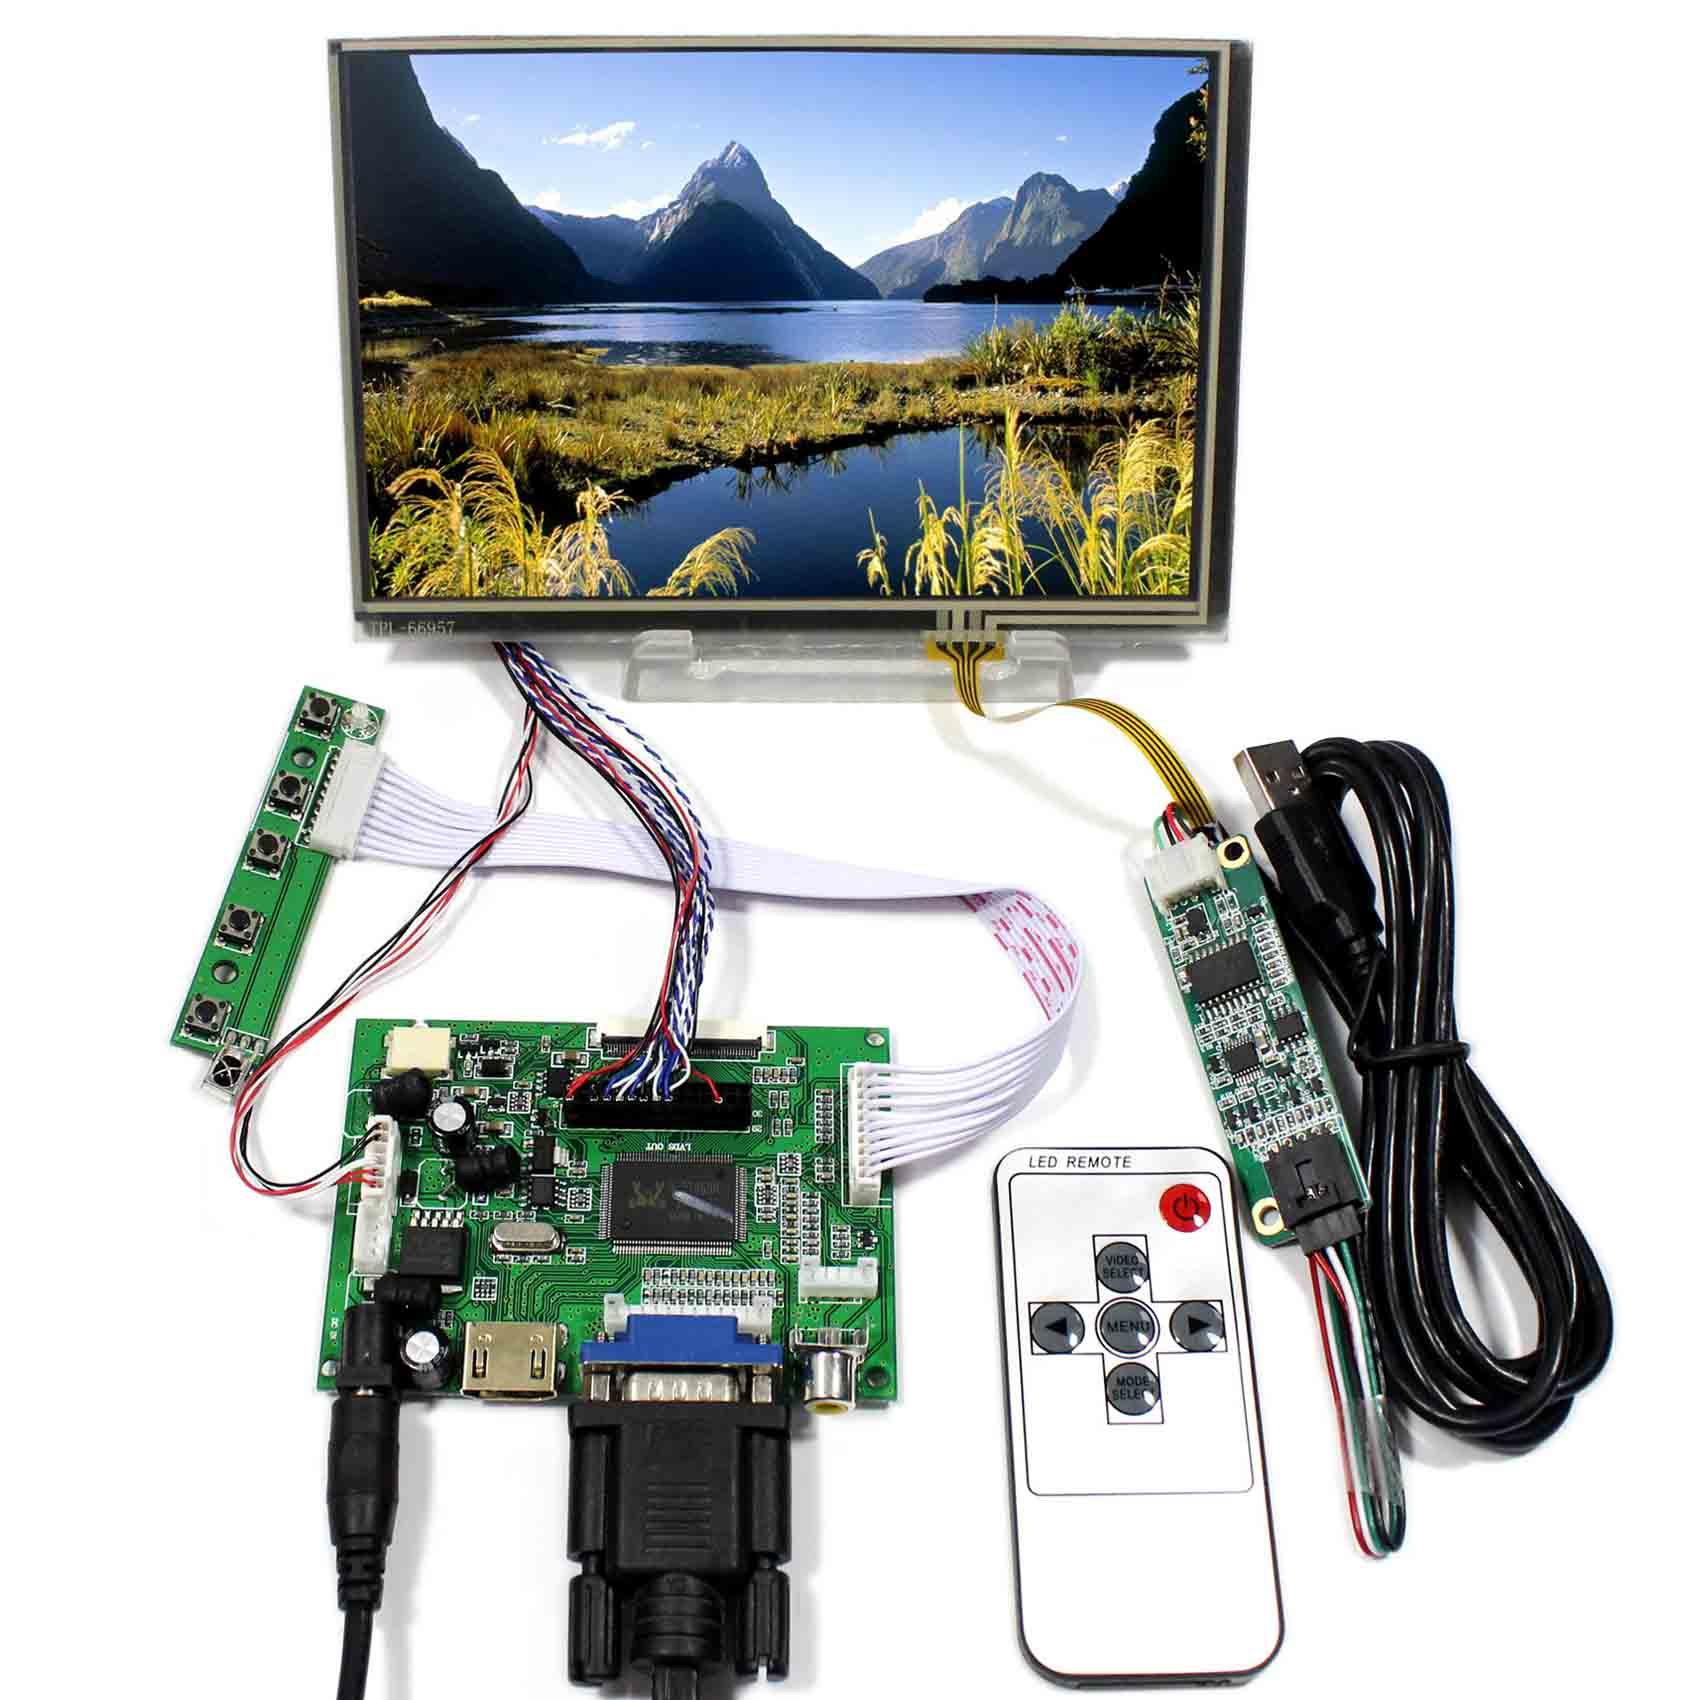 Details About HDMI VGA 2AV LCD Driver Board VS With 71280x800 N070ICG LD1 Touch Screen